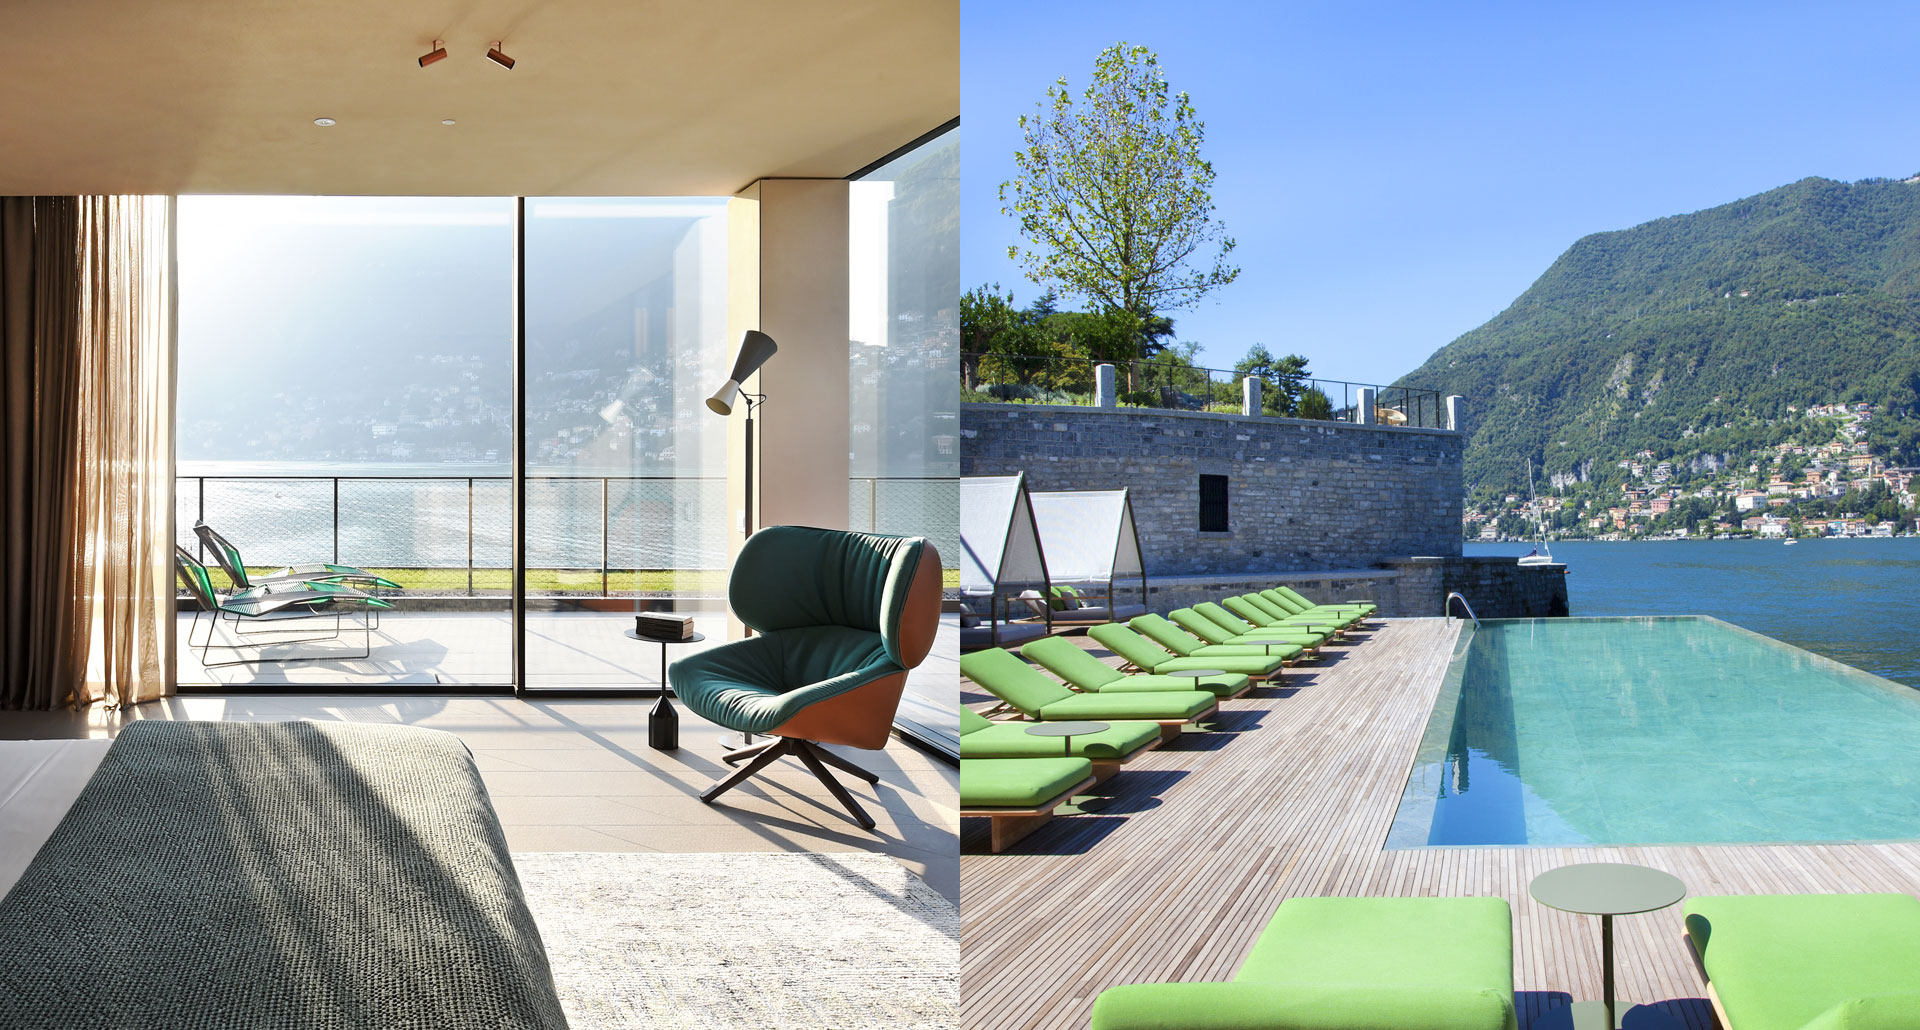 Il Sereno boutique hotel in Lake Como, Italy